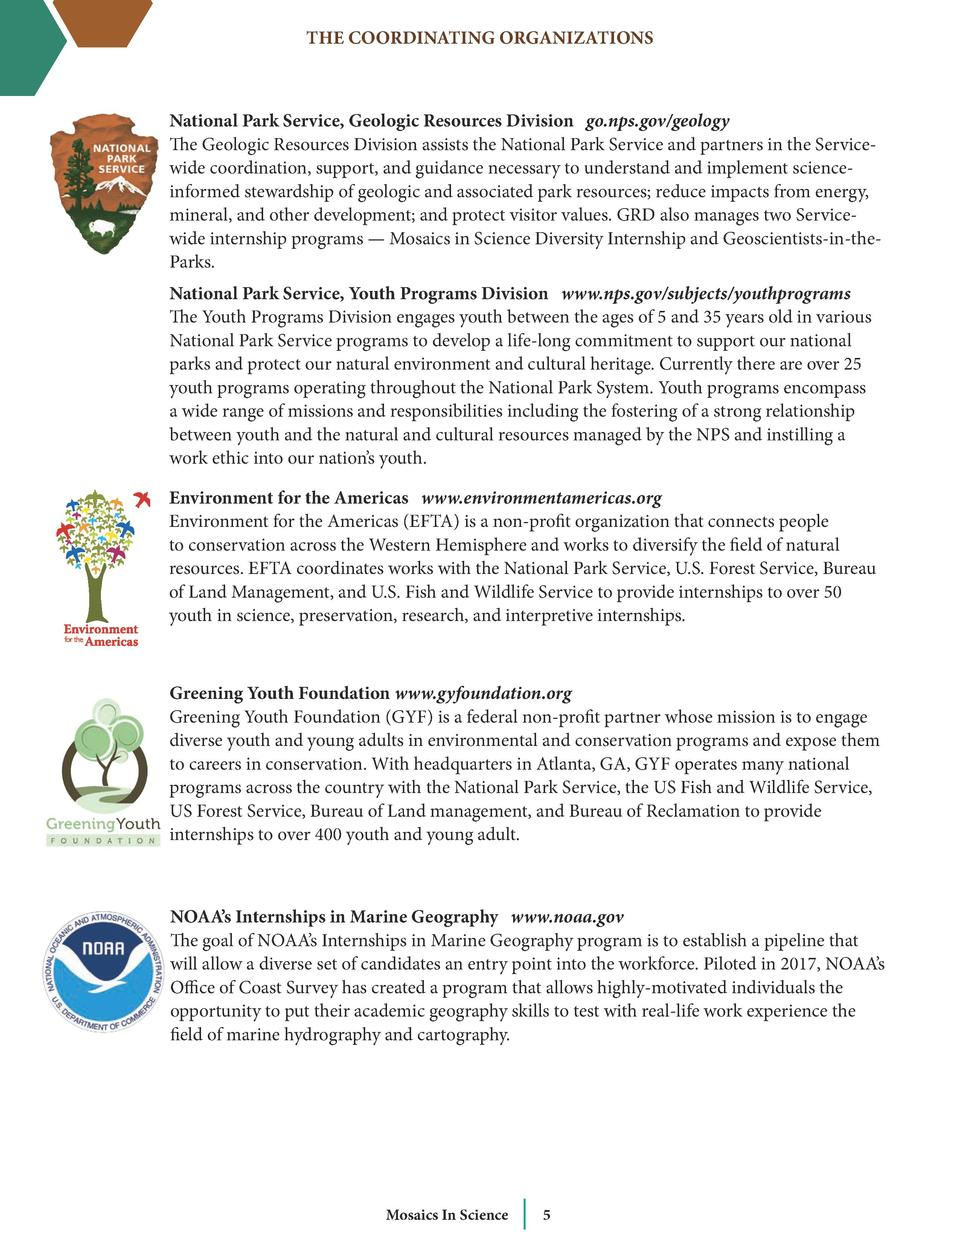 THE COORDINATING ORGANIZATIONS  National Park Service, Geologic Resources Division go.nps.gov geology The Geologic Resourc...